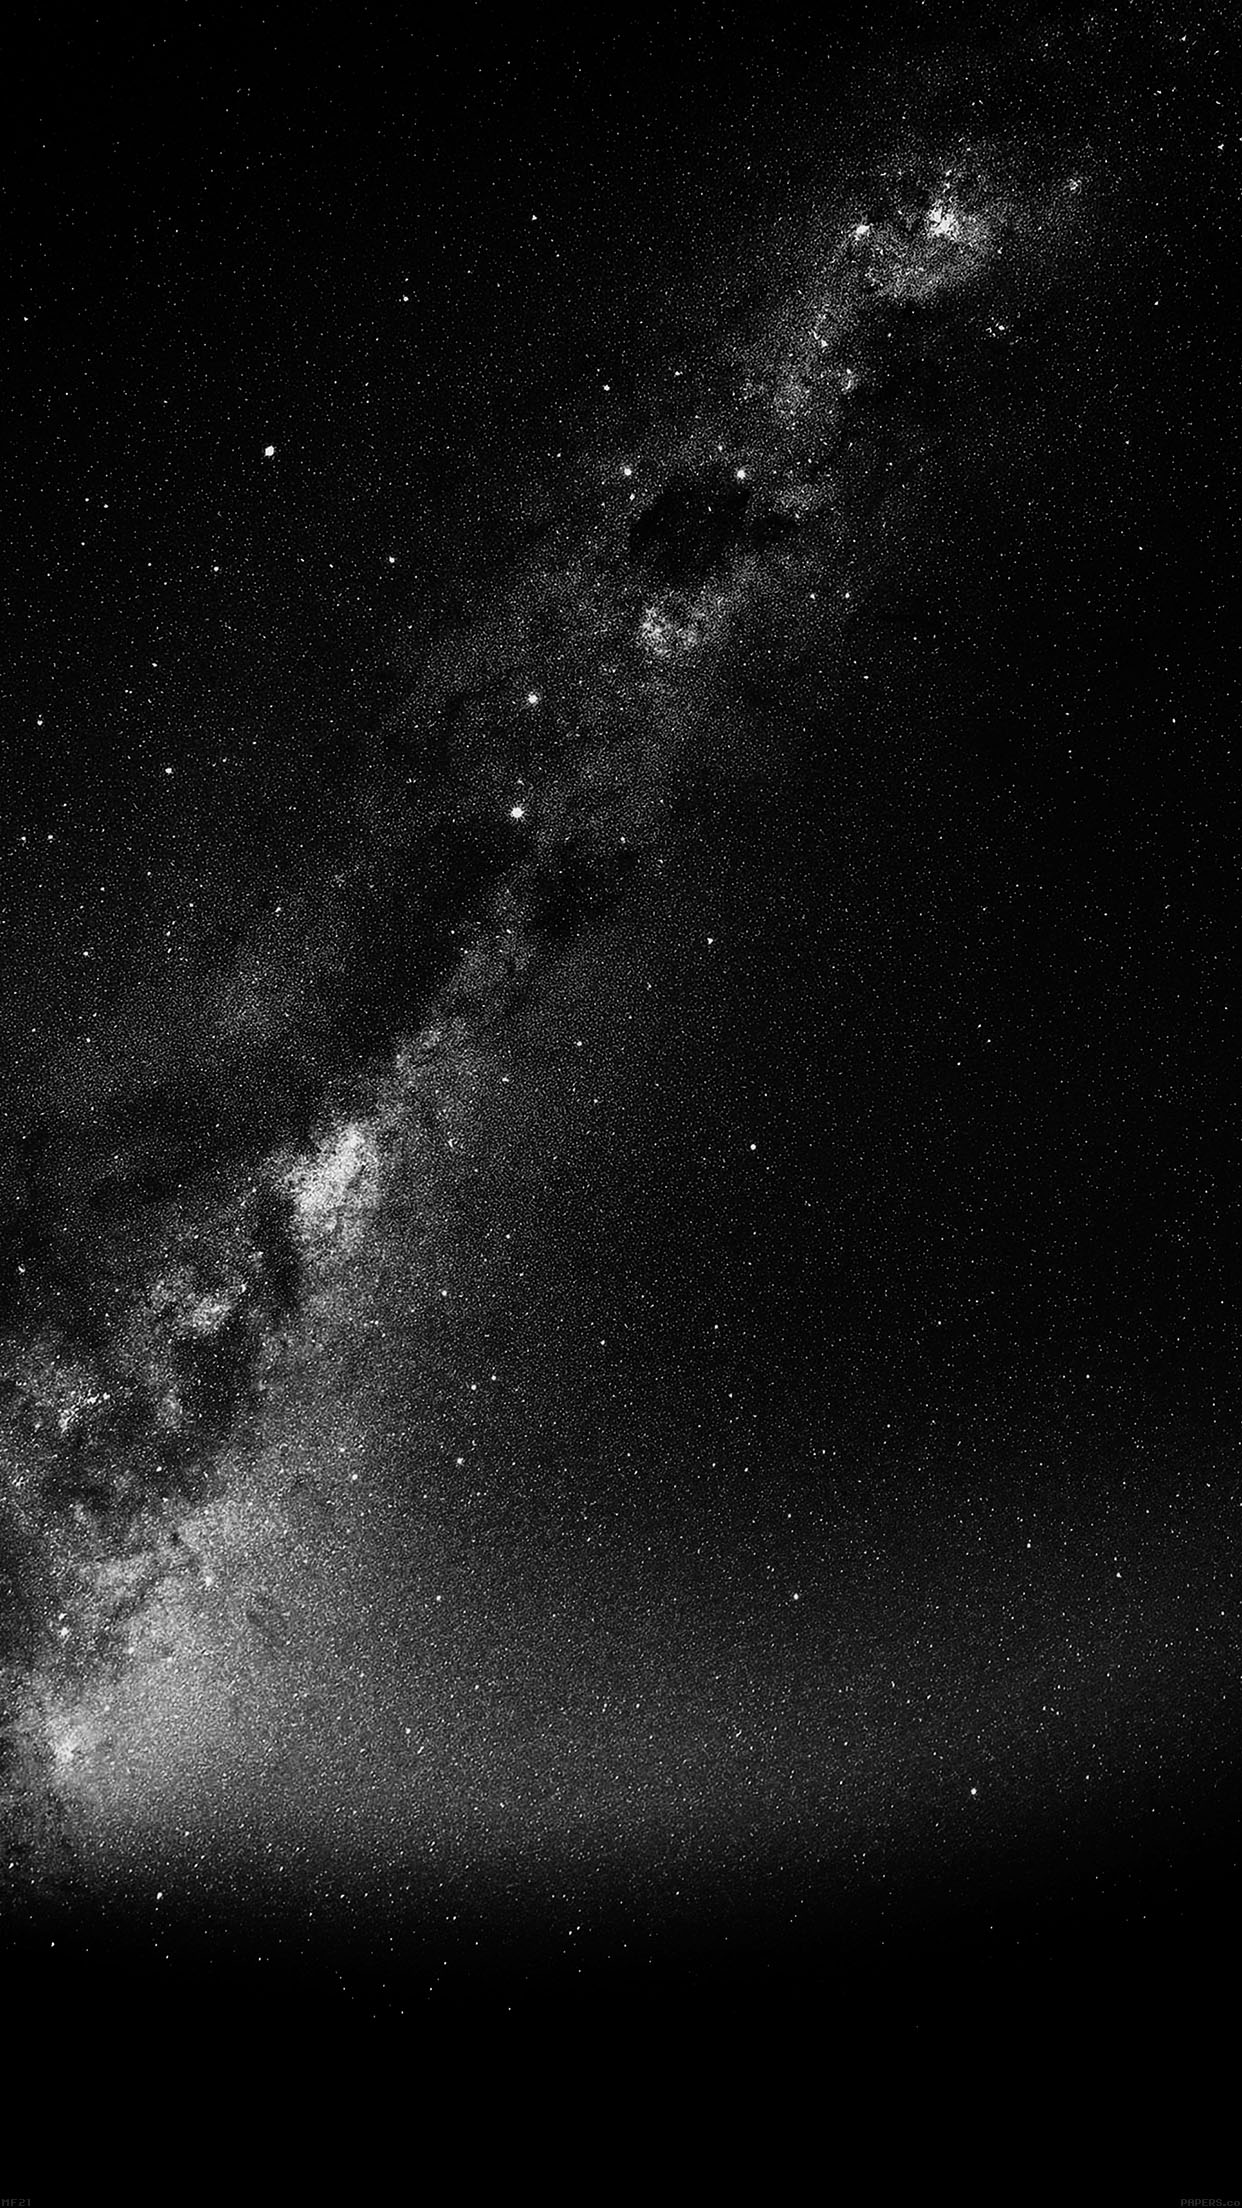 Mf21 summer black night revisited star space sky - Black space wallpaper ...